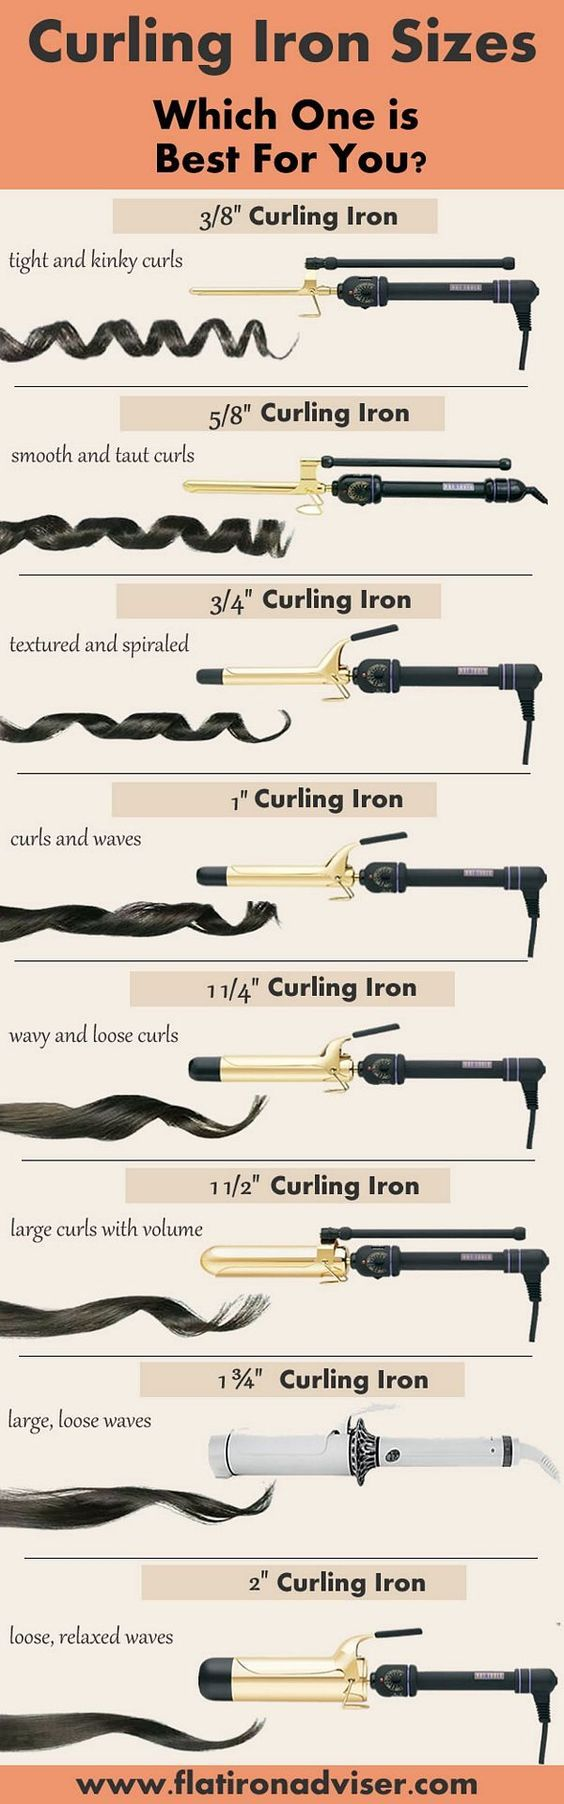 curling iron sizes and results guide: